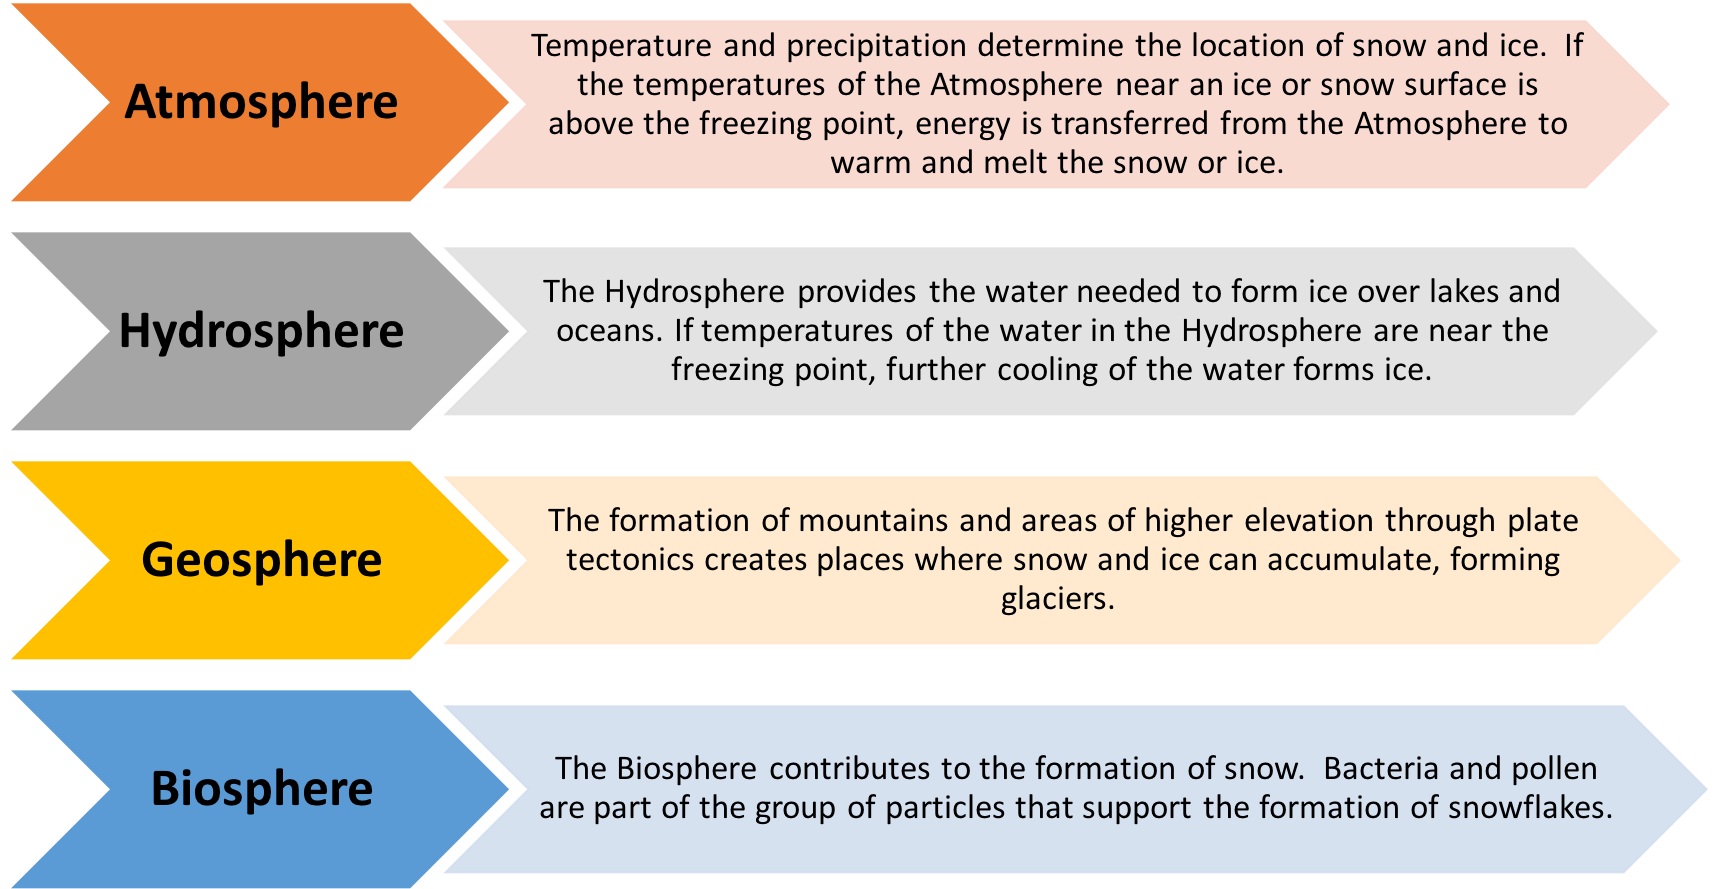 Cryosphere links